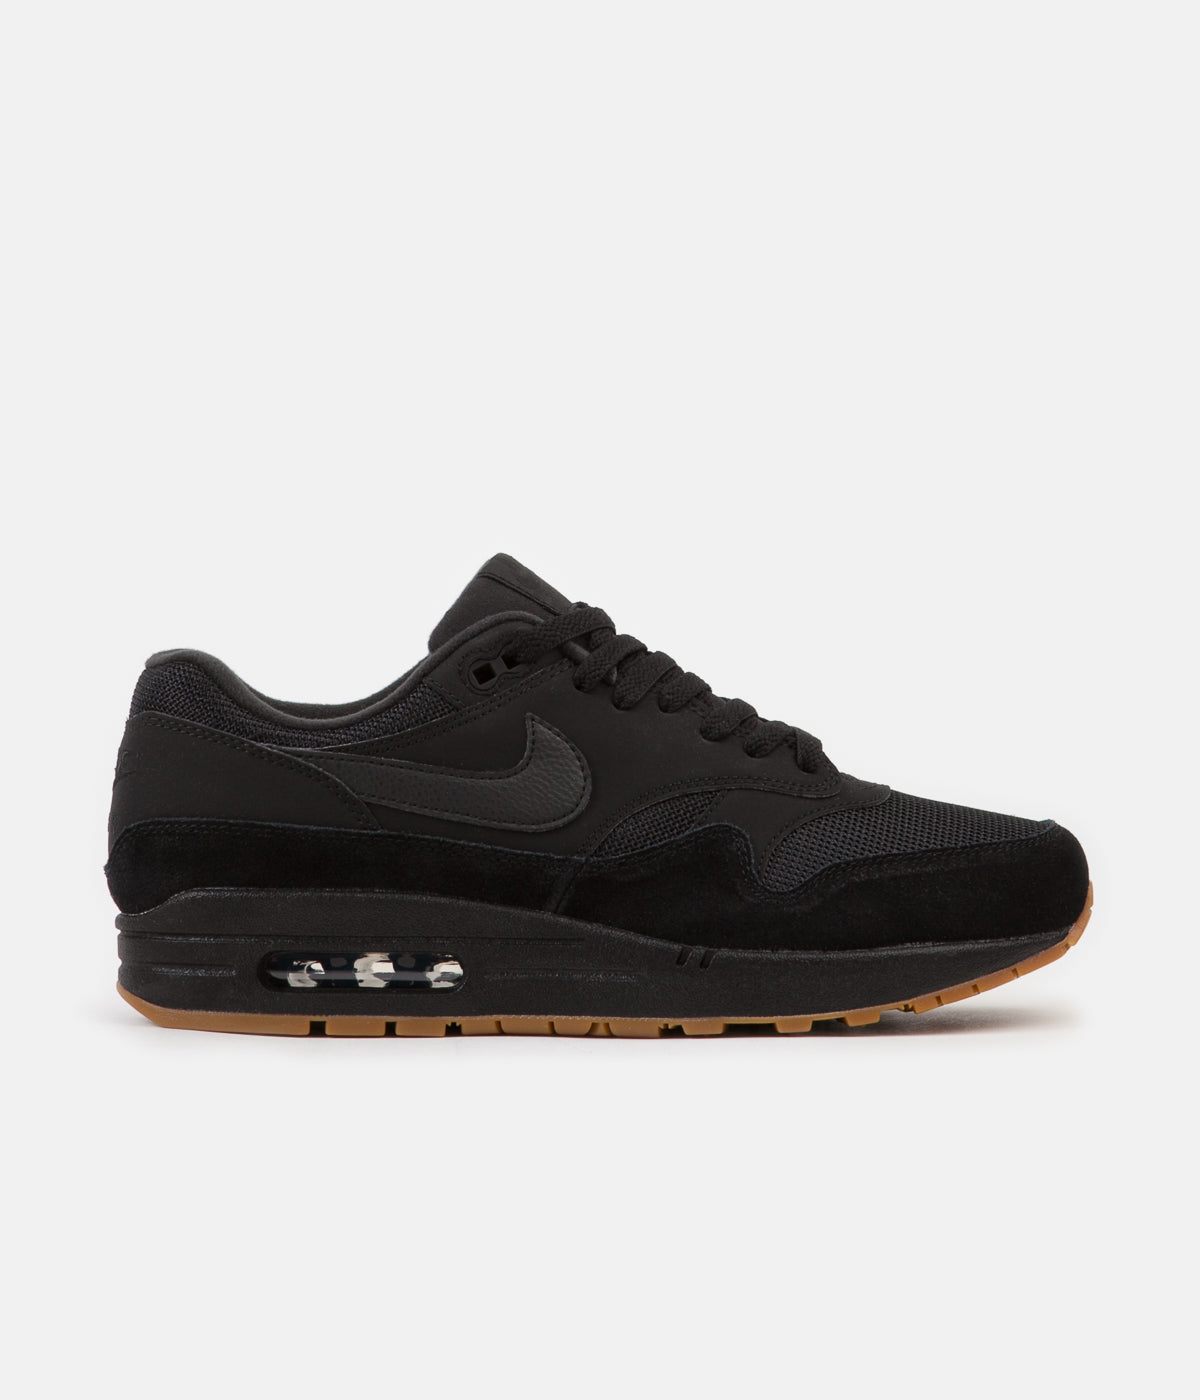 new product f3a58 e22a8 ... Nike Air Max 1 Shoes - Black  Black - Black - Gum Med Brown ...